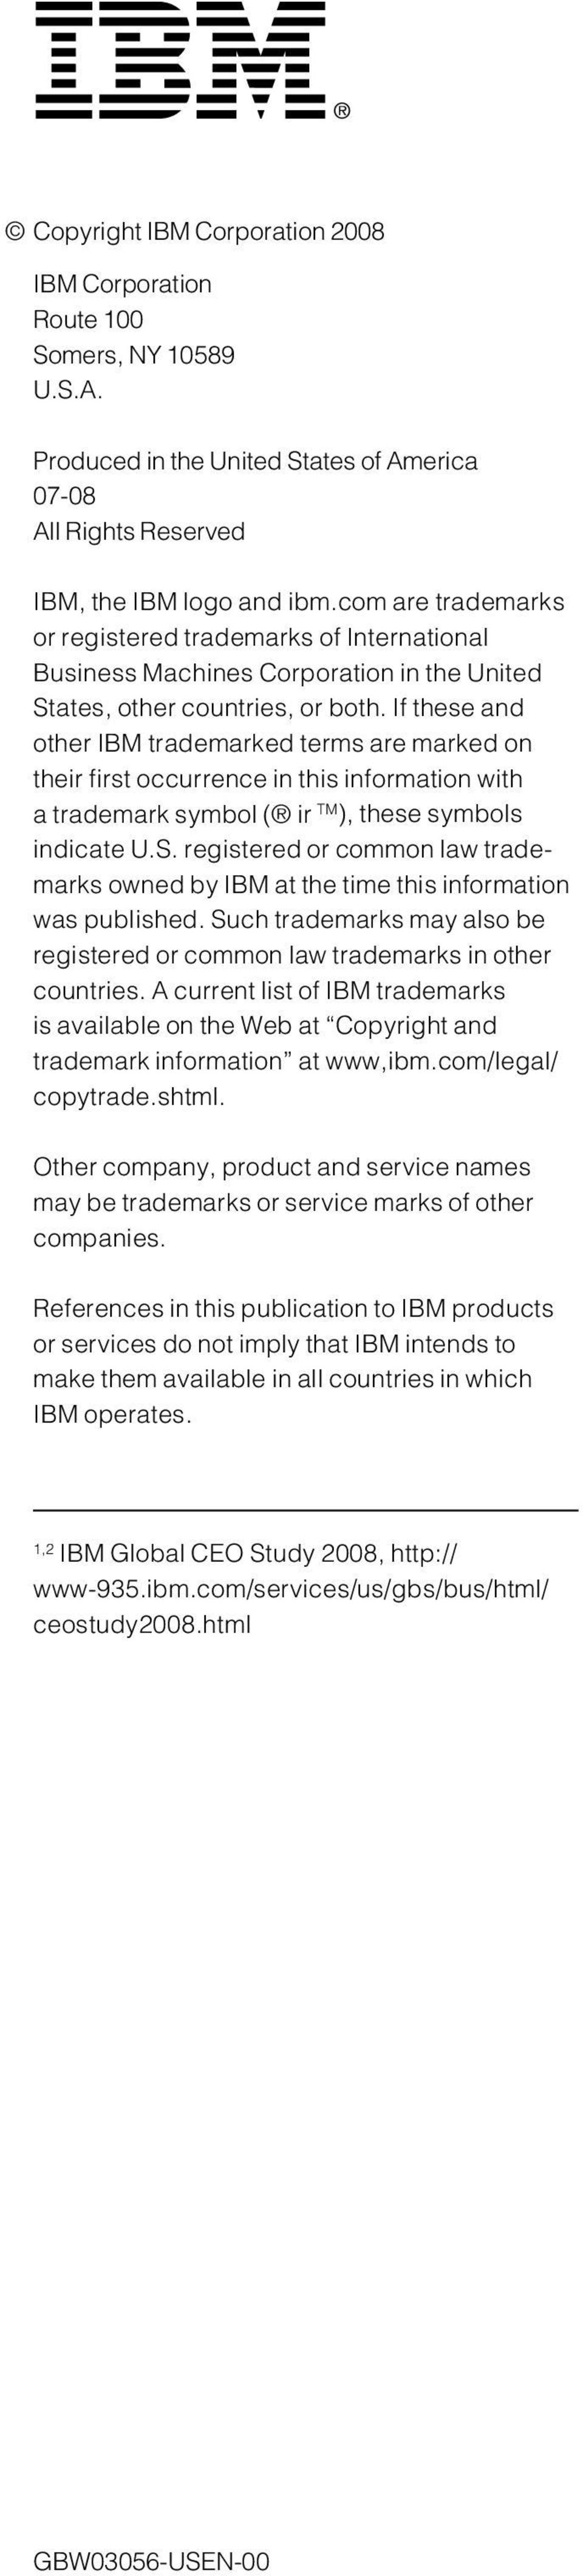 If these and other IBM trademarked terms are marked on their first occurrence in this information with a trademark symbol ( ir TM ), these symbols indicate U.S.